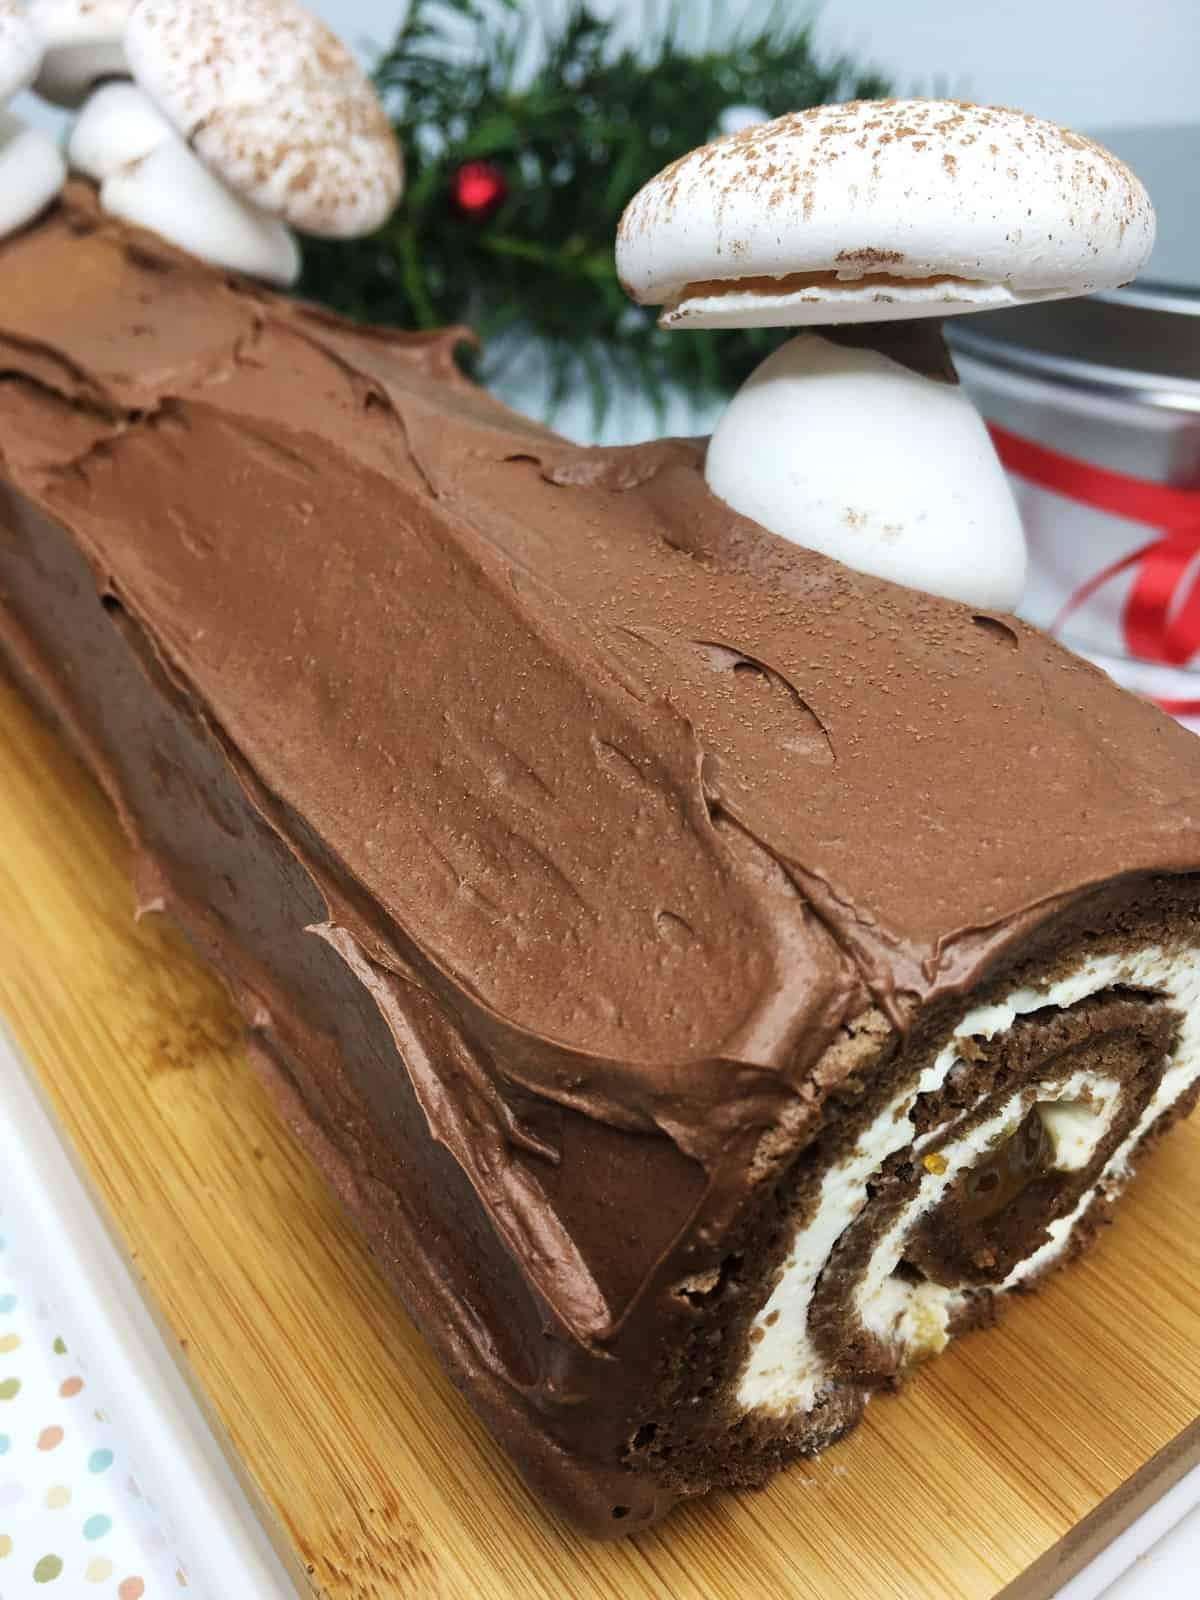 Christmas Yule log covered with chocolate frosting and decorated with meringue mushrooms on a wooden board